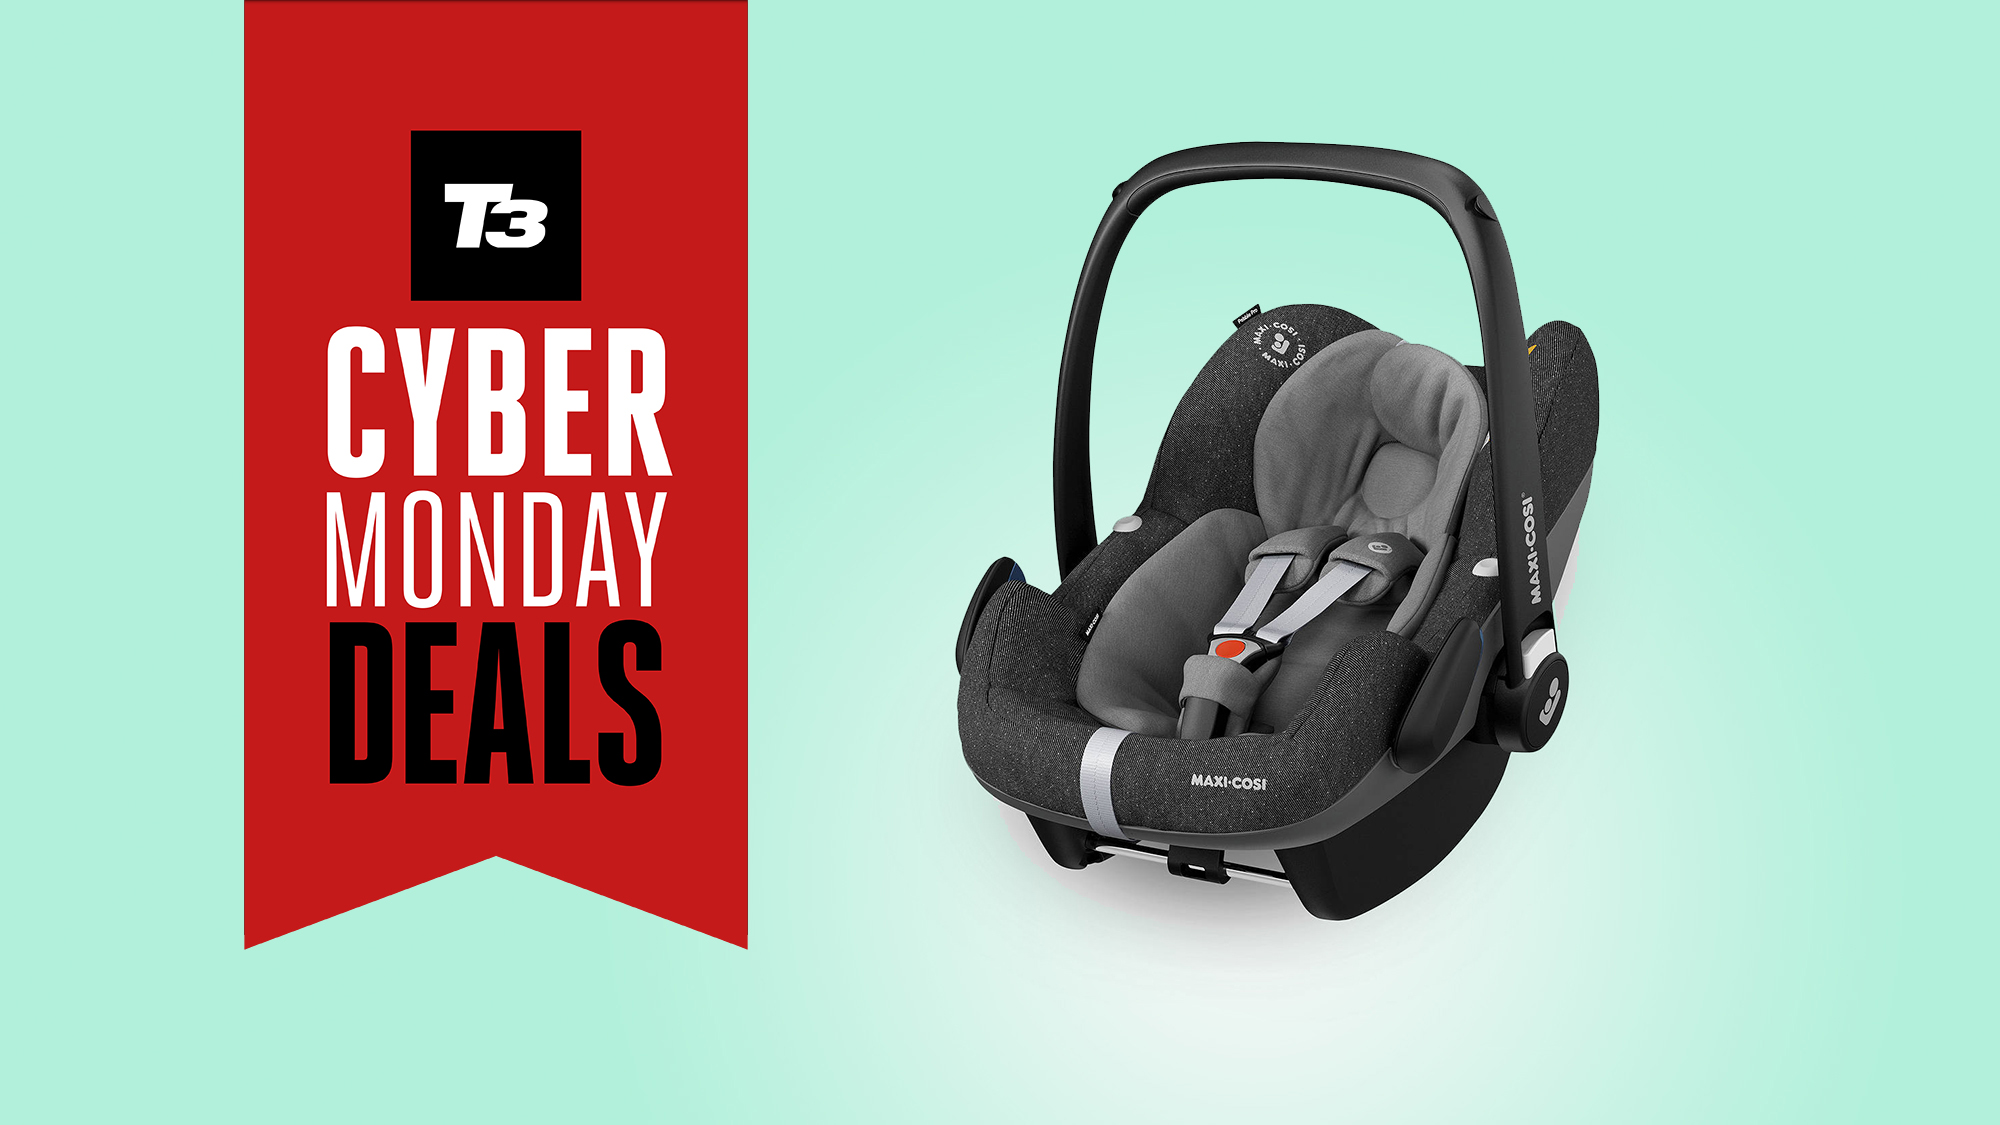 Joie Isofix Base Uk Save On Premium Child Car Seats In The John Lewis Cyber